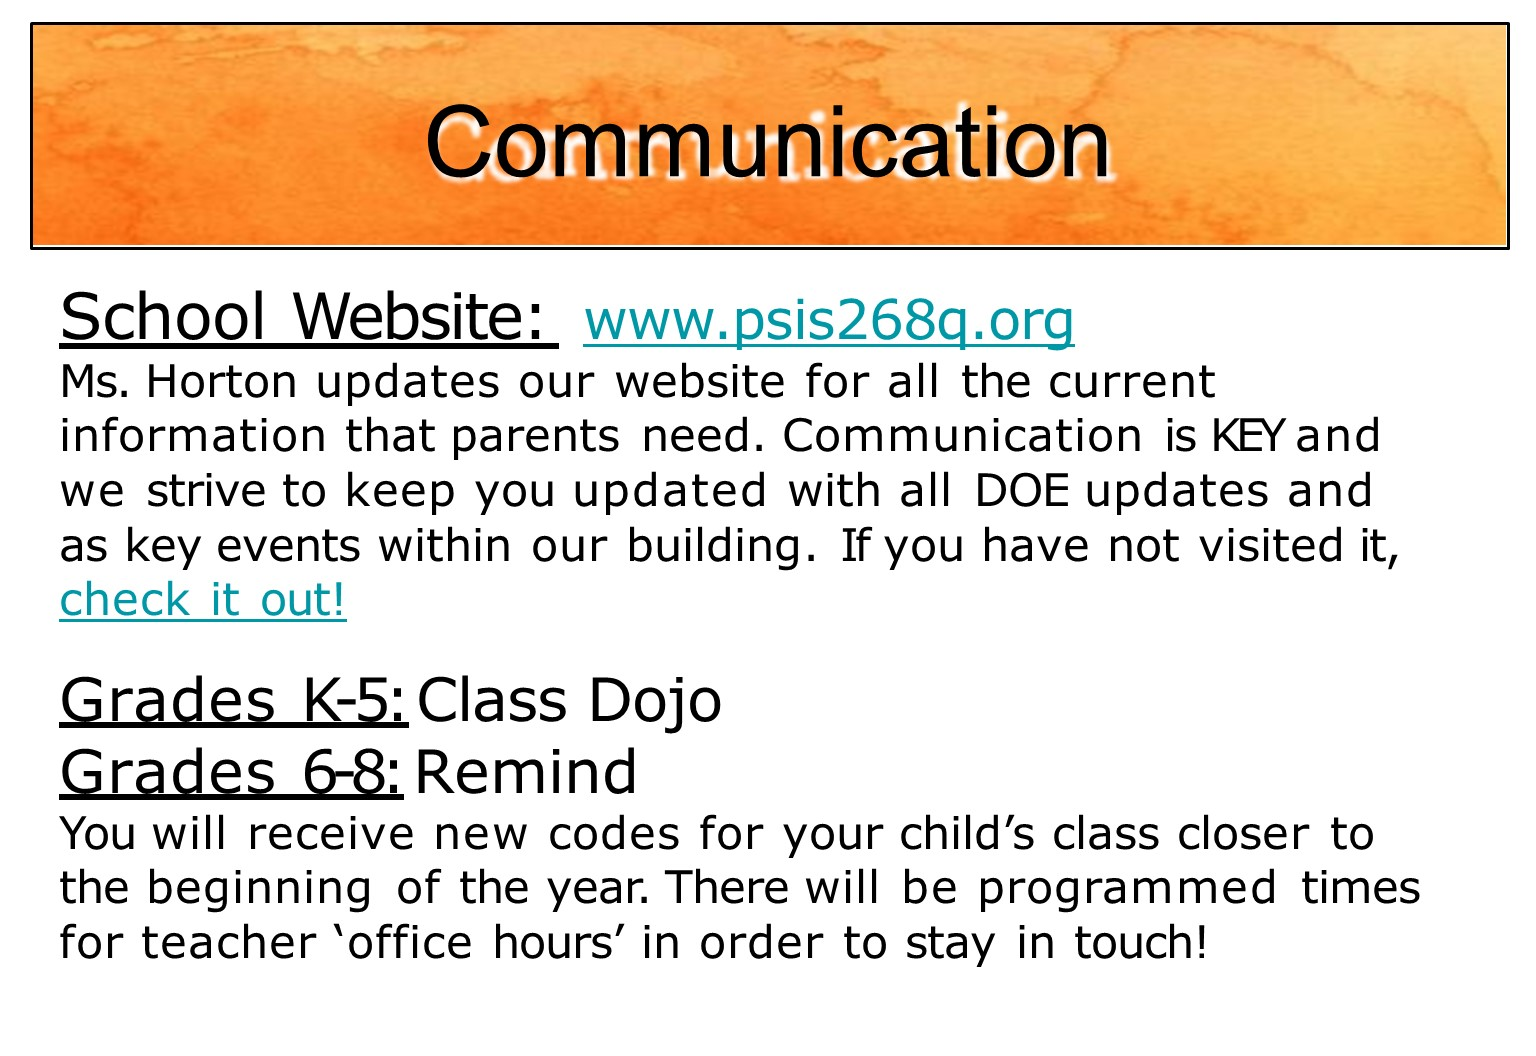 communication is found on website